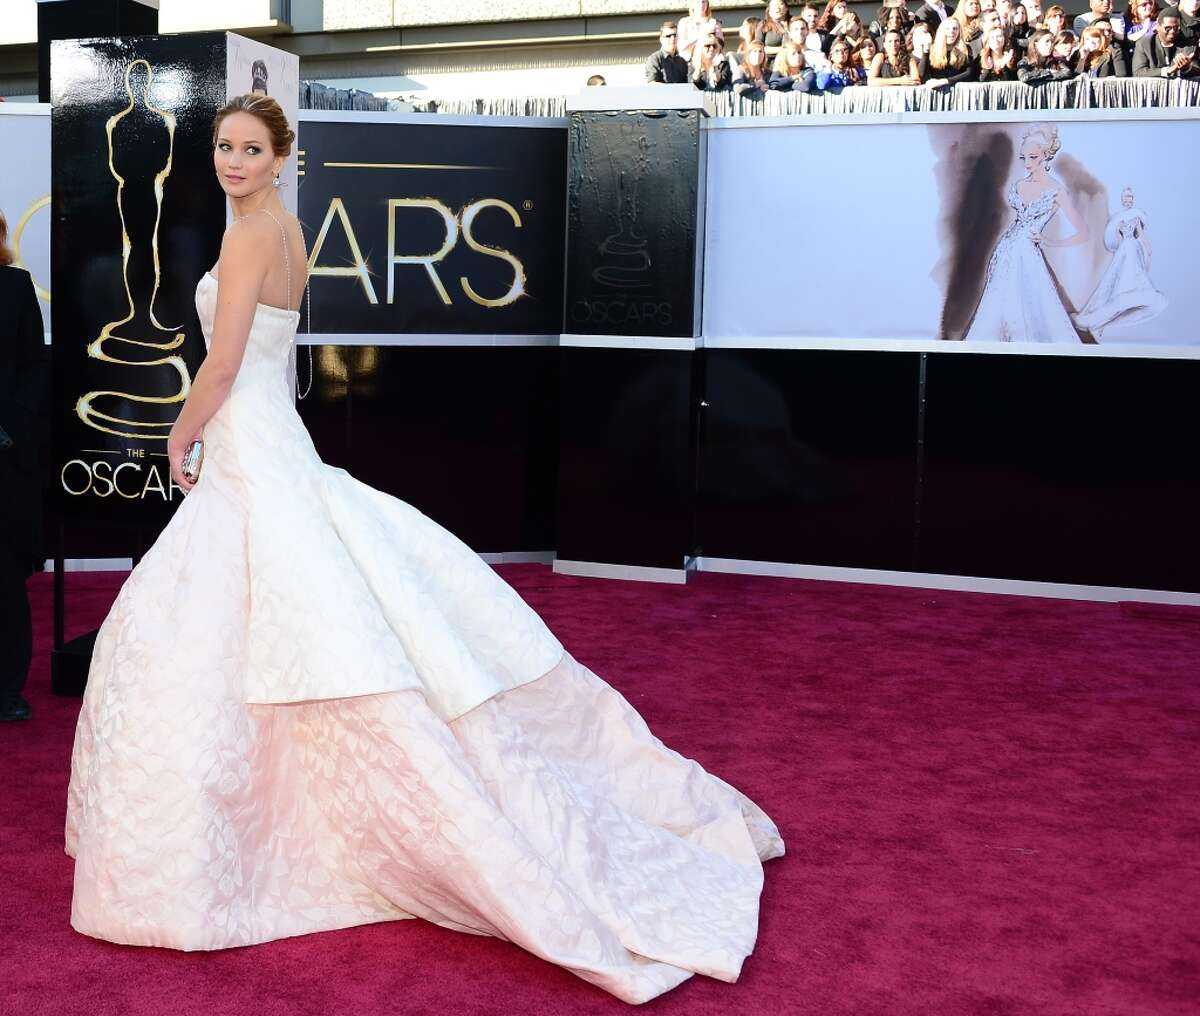 Jennifer Lawrence paved a road to Oscar gold with terrific gown choices, making her the new fashion